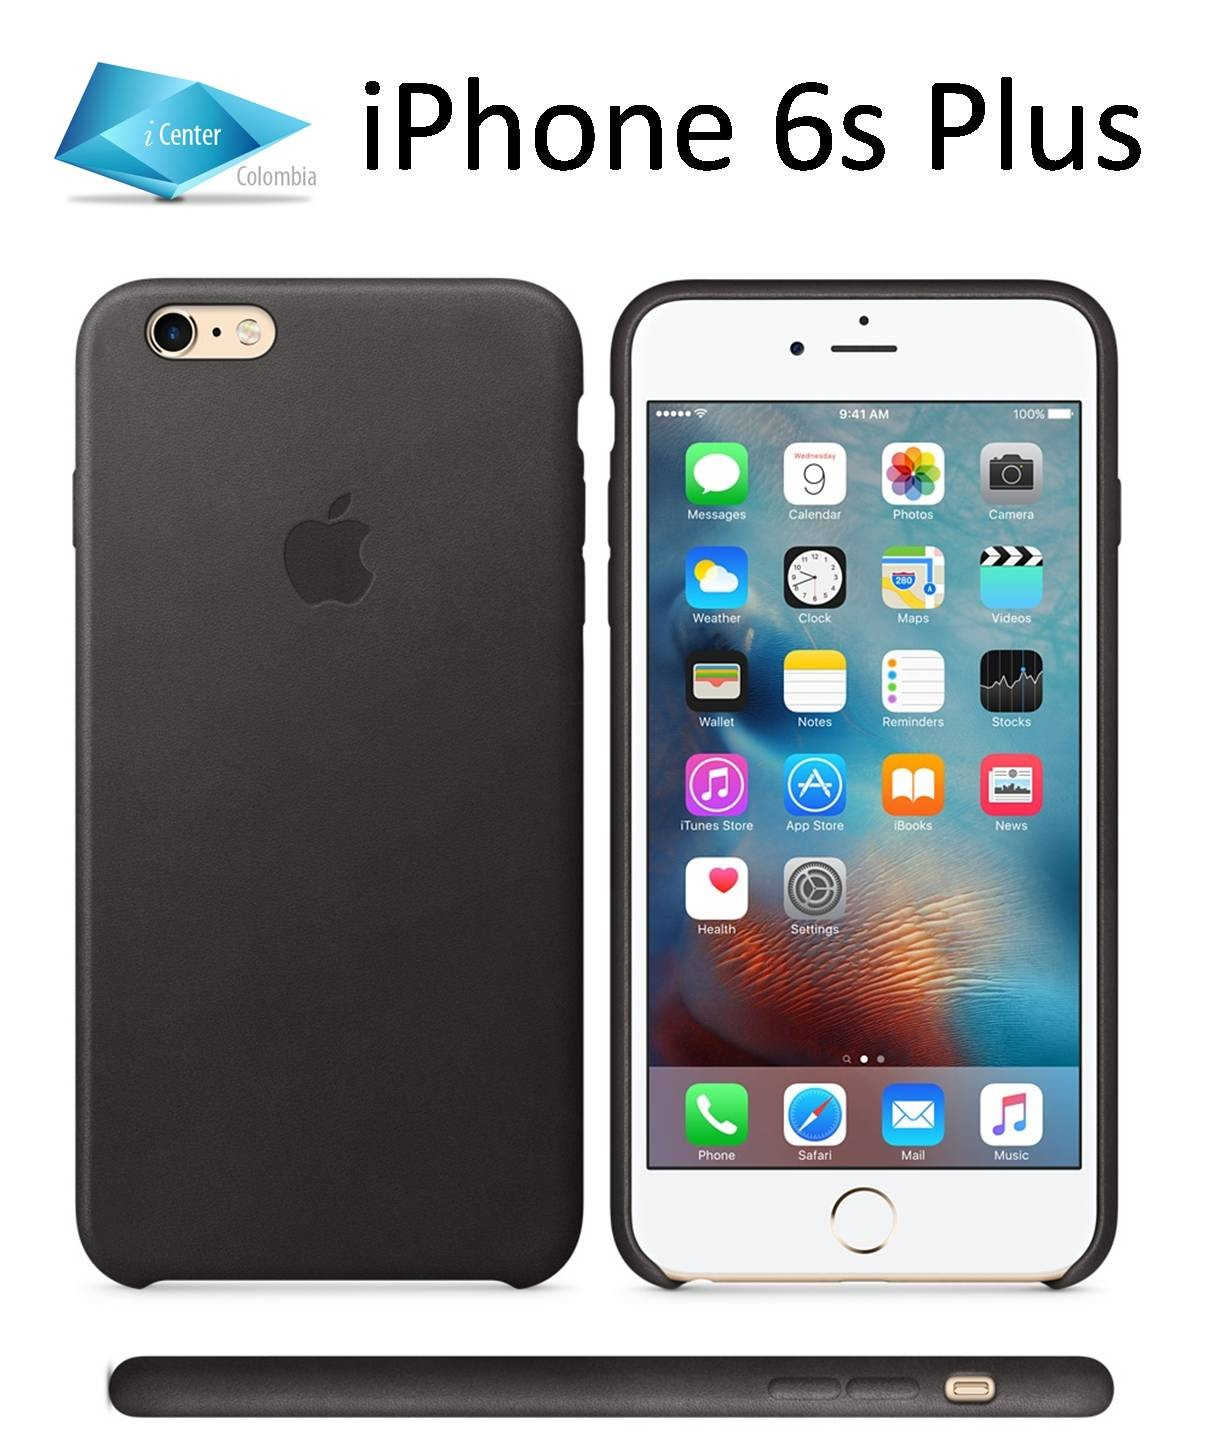 iphone 6 plus used carcasa estuche funda cuero iphone 6 plus 6s plus con 2566